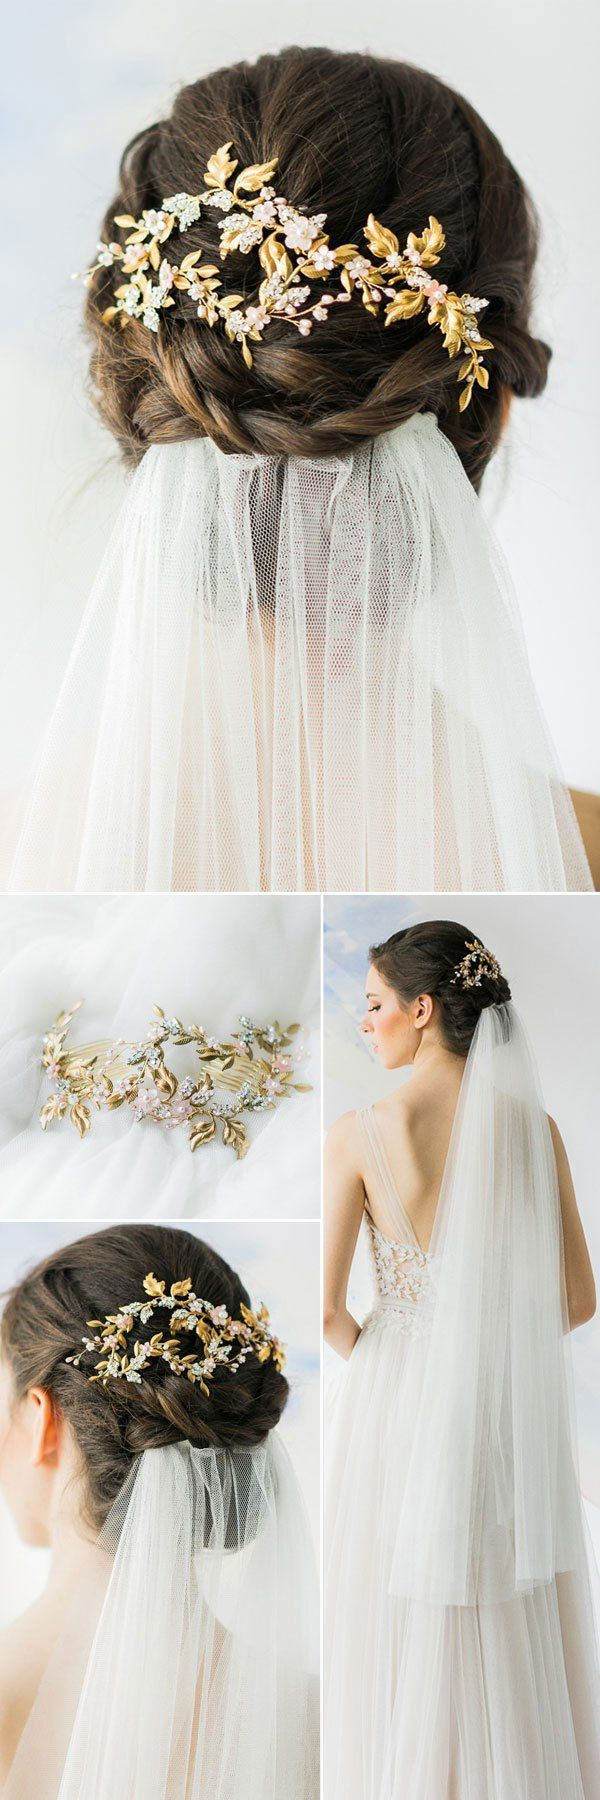 Top 20 Wedding Hairstyles with Veils and Accessories Easy twisty ...